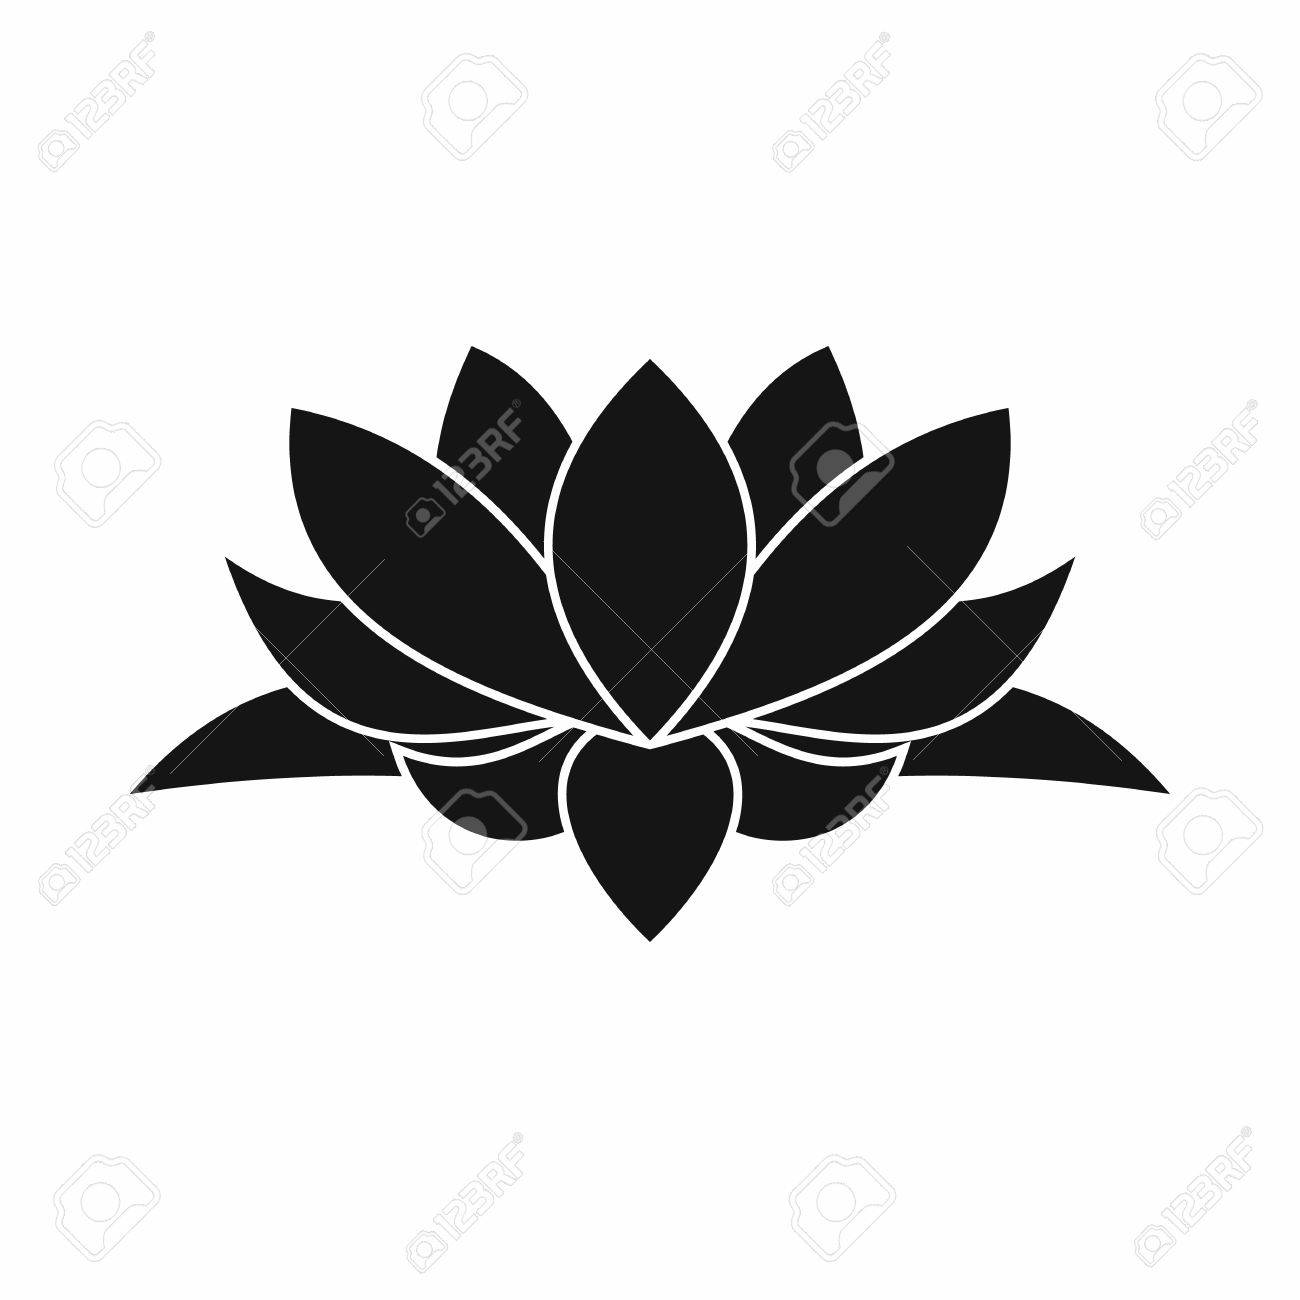 Lotus flower icon in simple style isolated on white background - 59137737